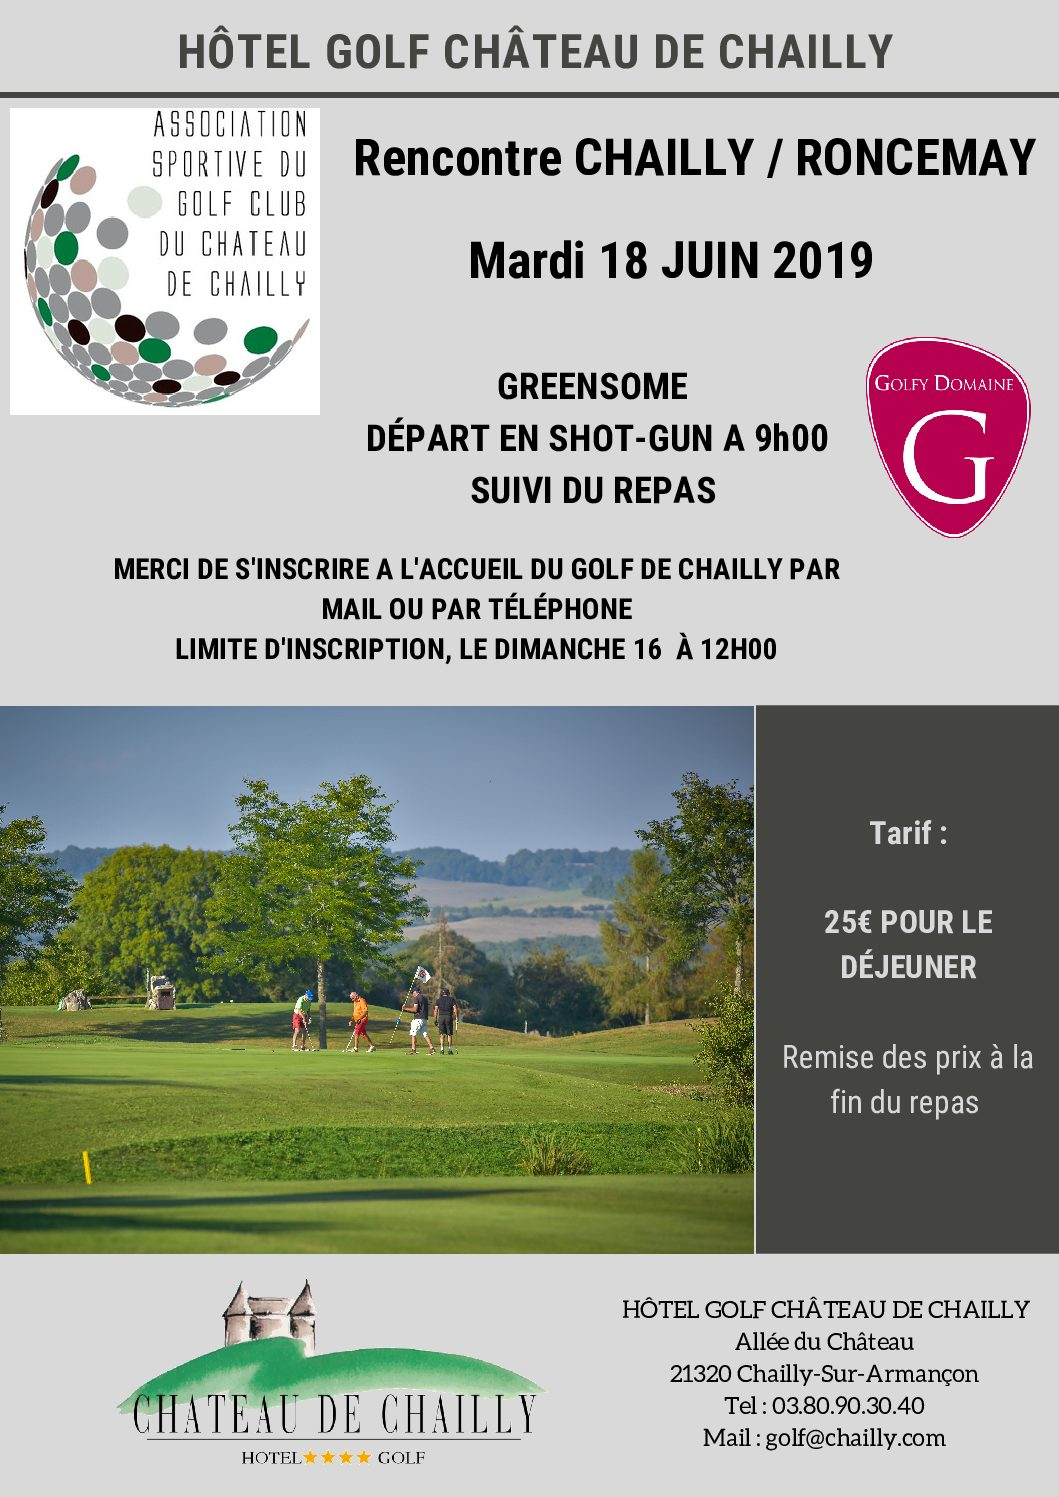 Rencontre Interclub Chailly – Roncemay